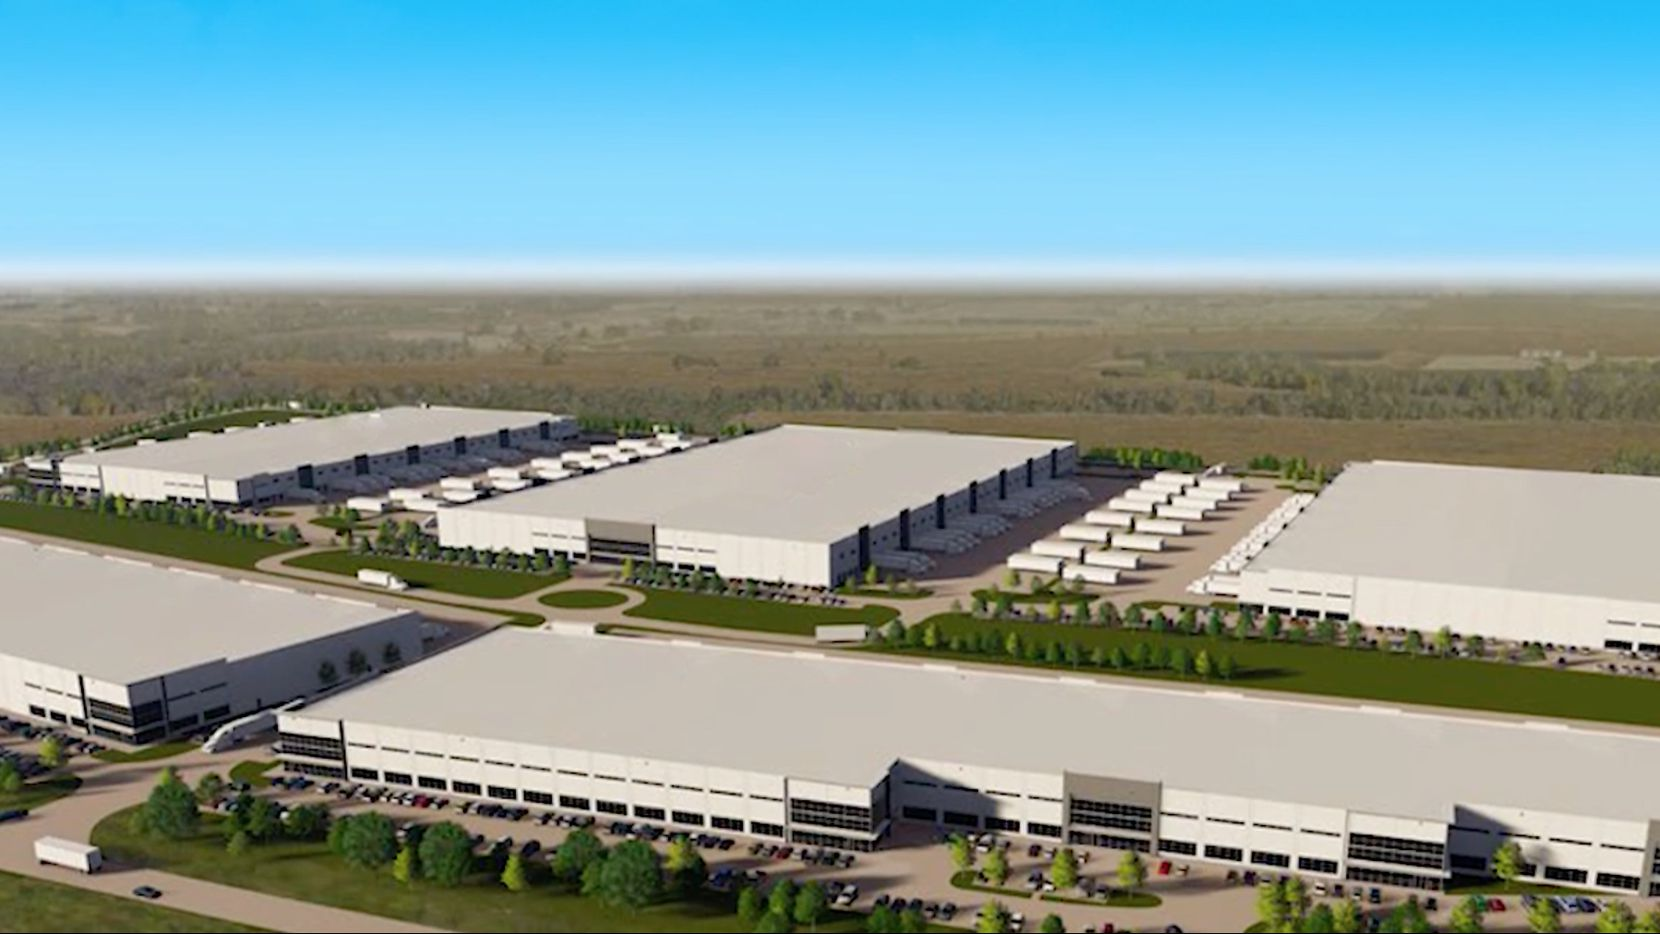 Bandera Ventures' new Gateway Logistics Center at DFW Airport has five buildings and has landed several major tenants.